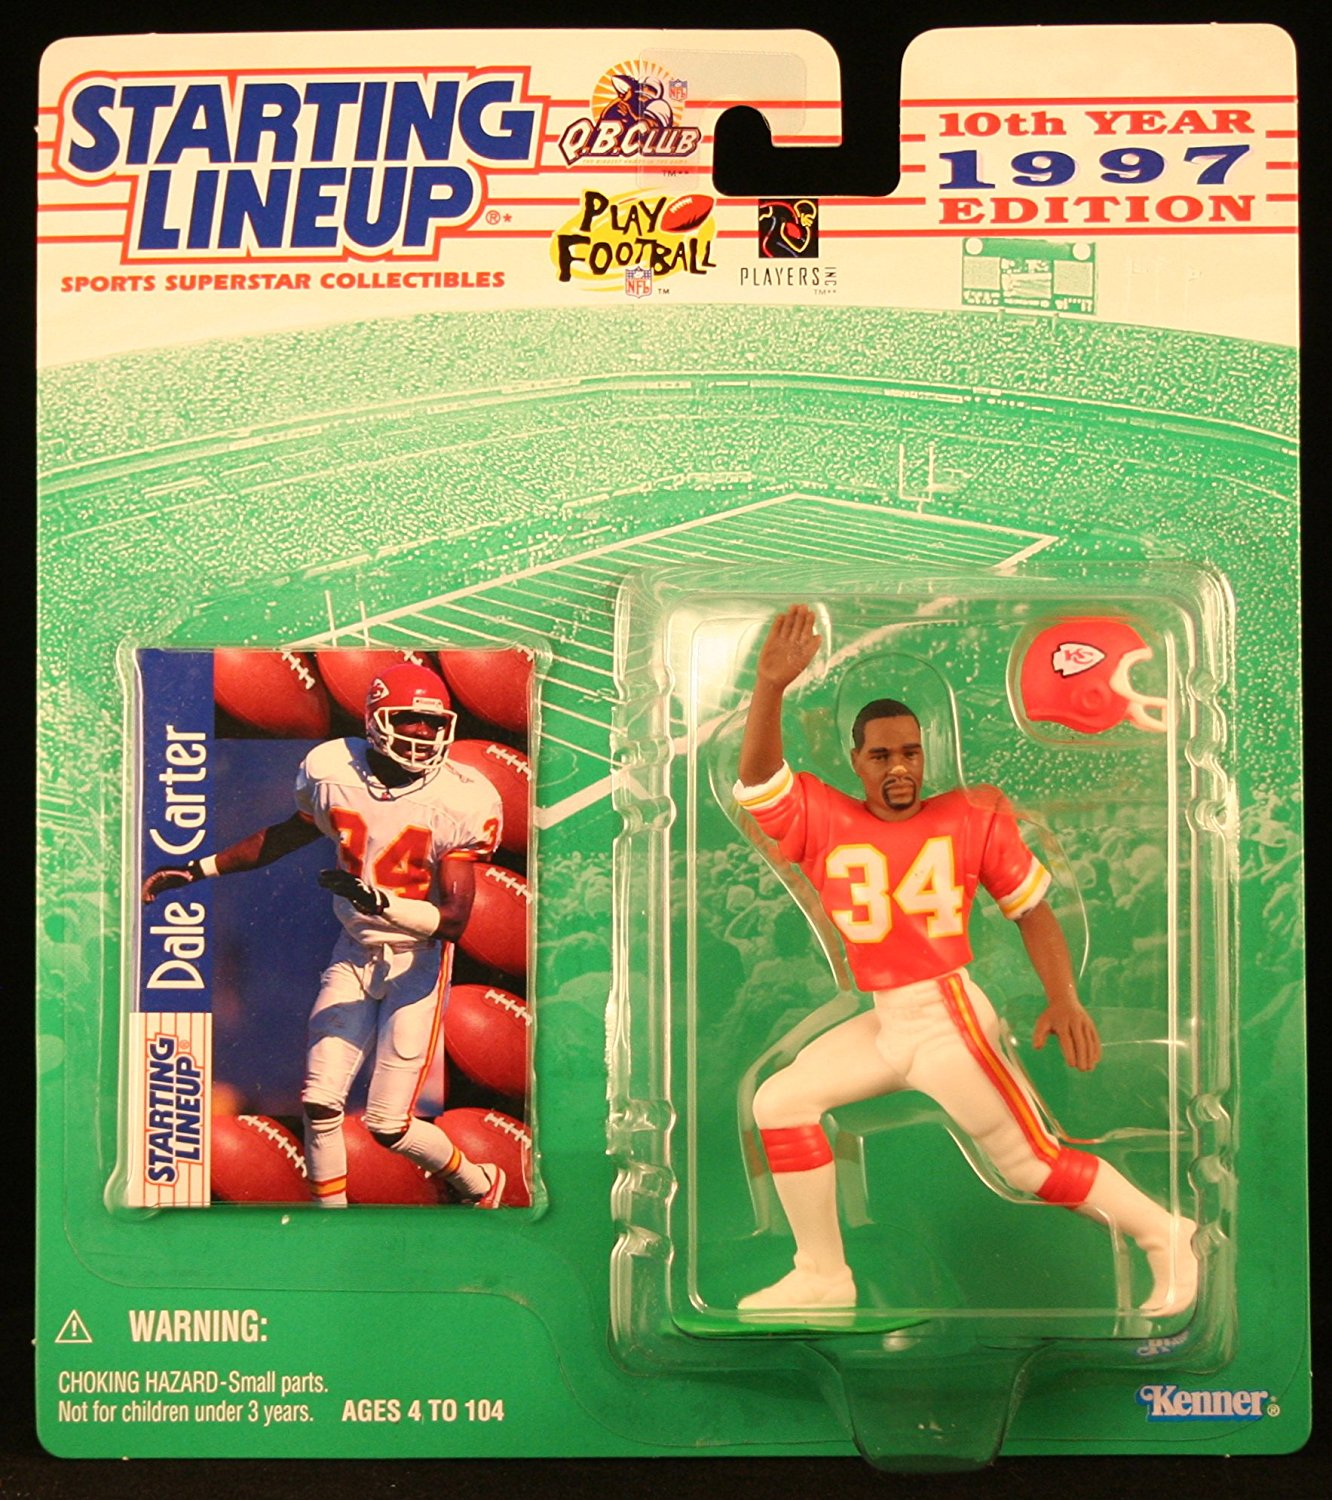 DALE CARTER / KANSAS CITY CHIEFS 1997 NFL Starting Lineup Action Figure & Exclusive NFL Collector Trading Card